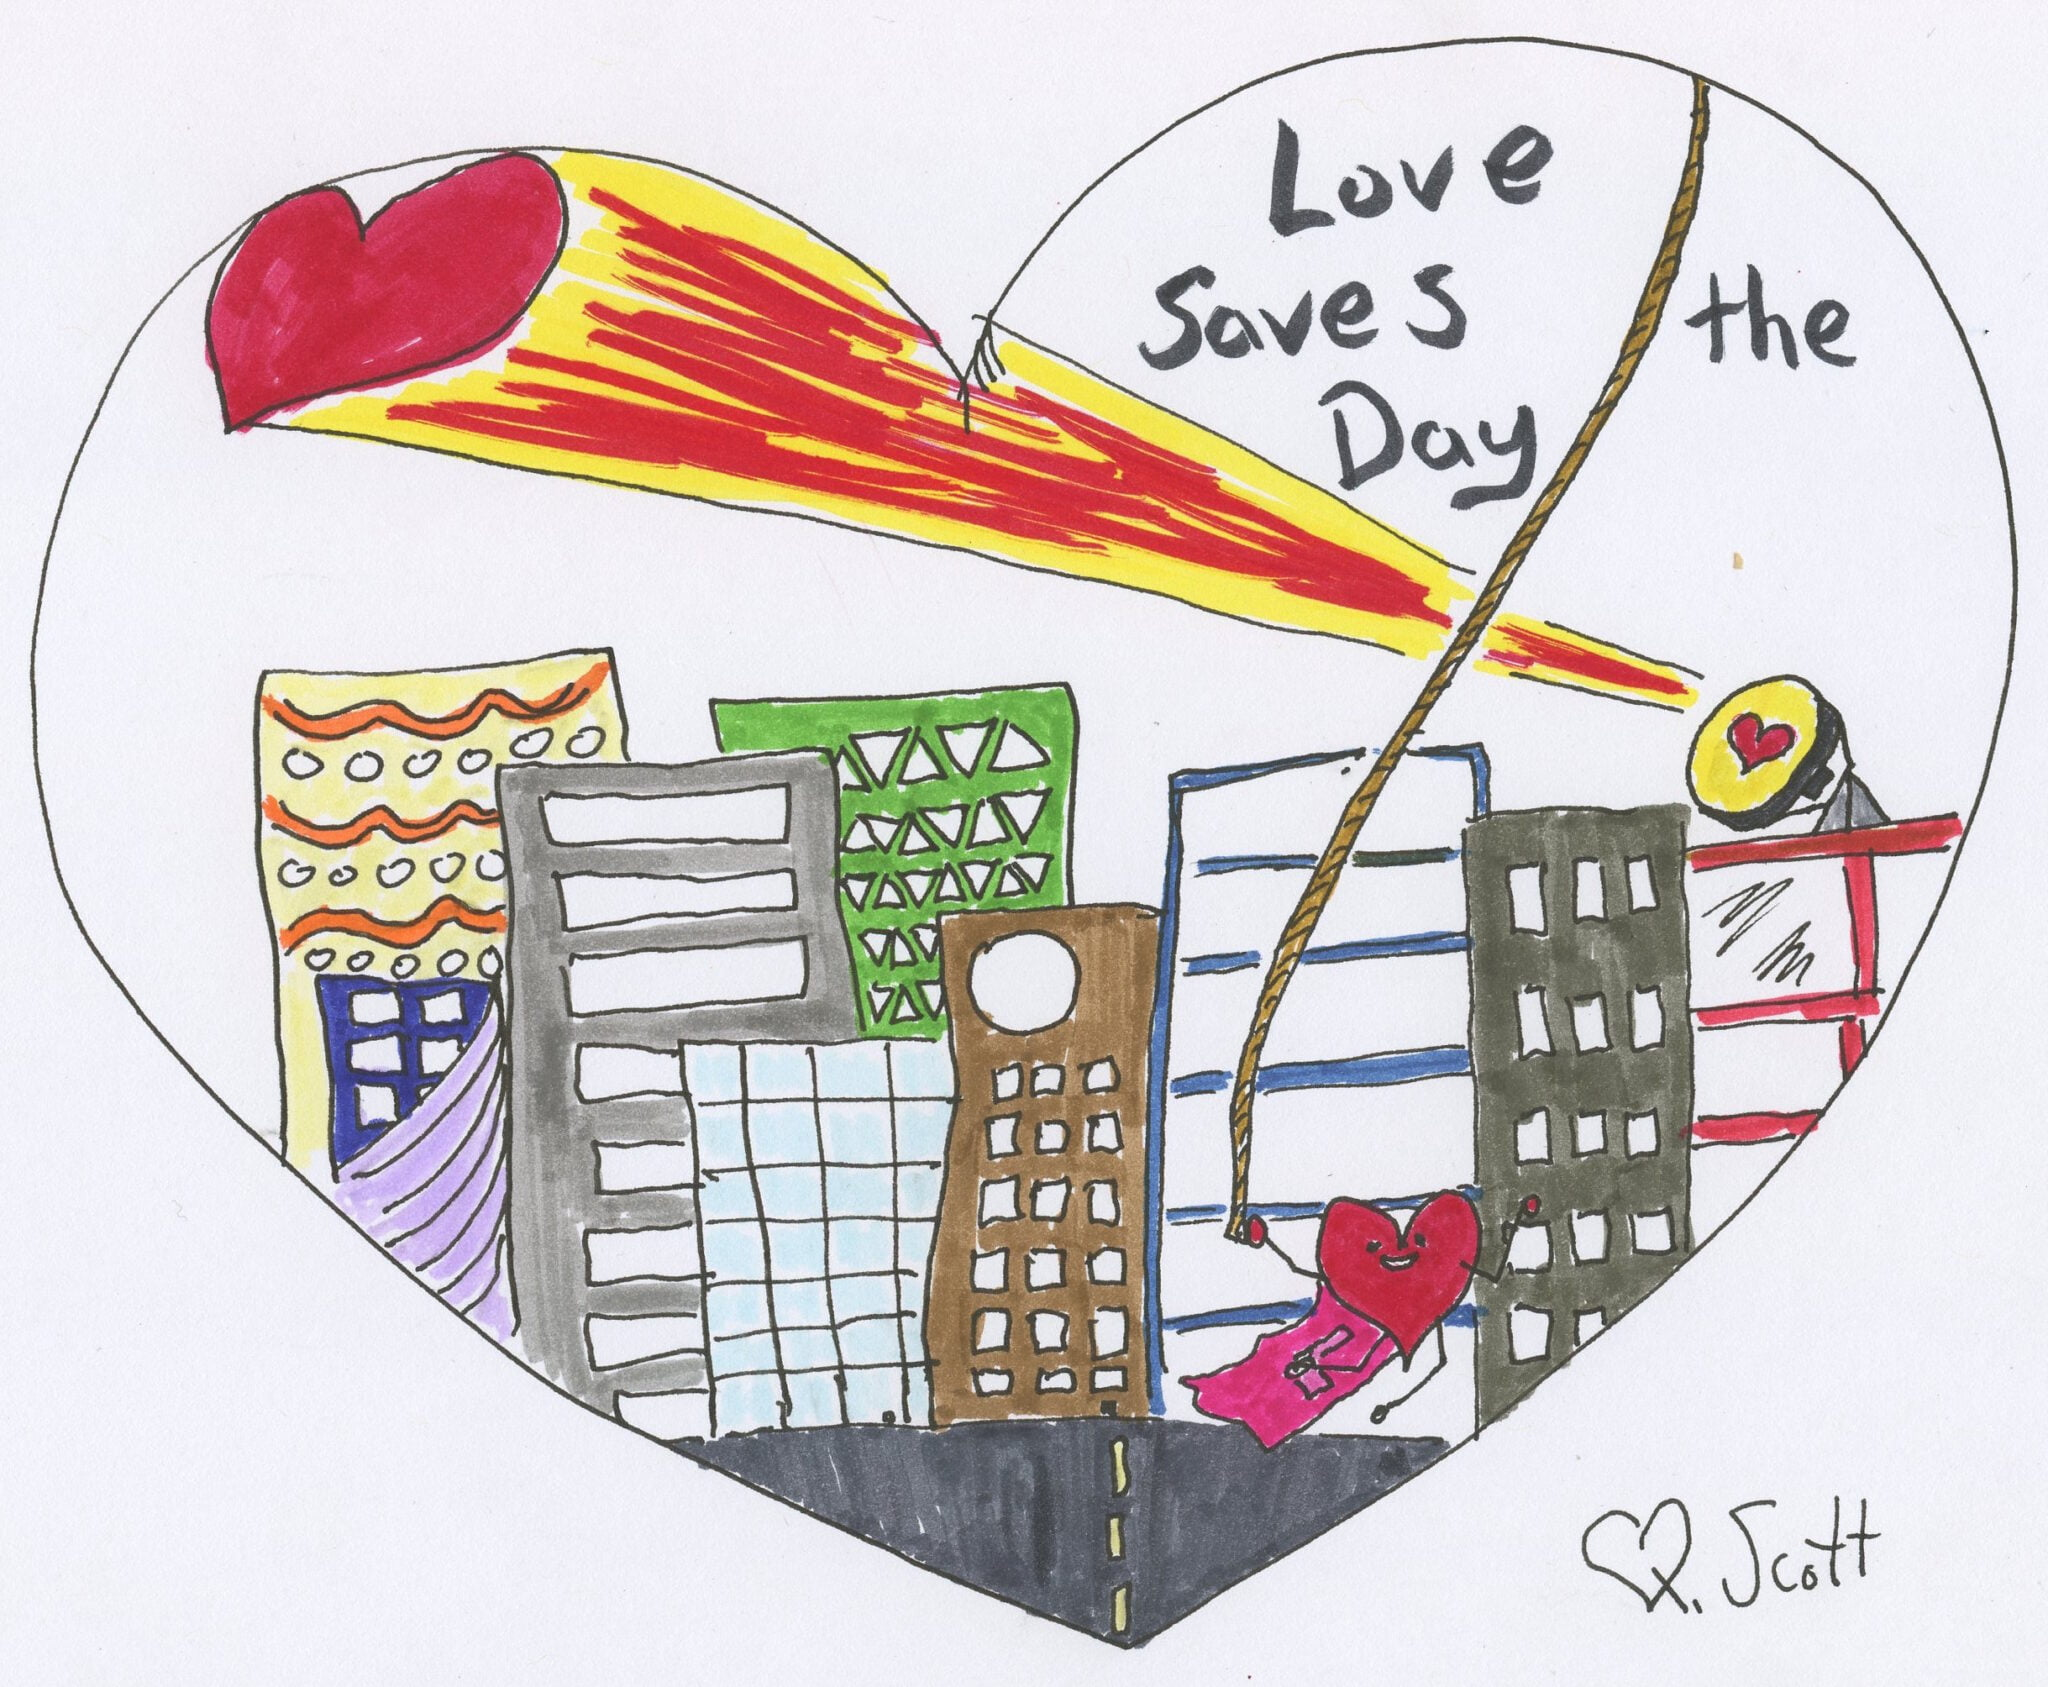 Loves saves the day once again.